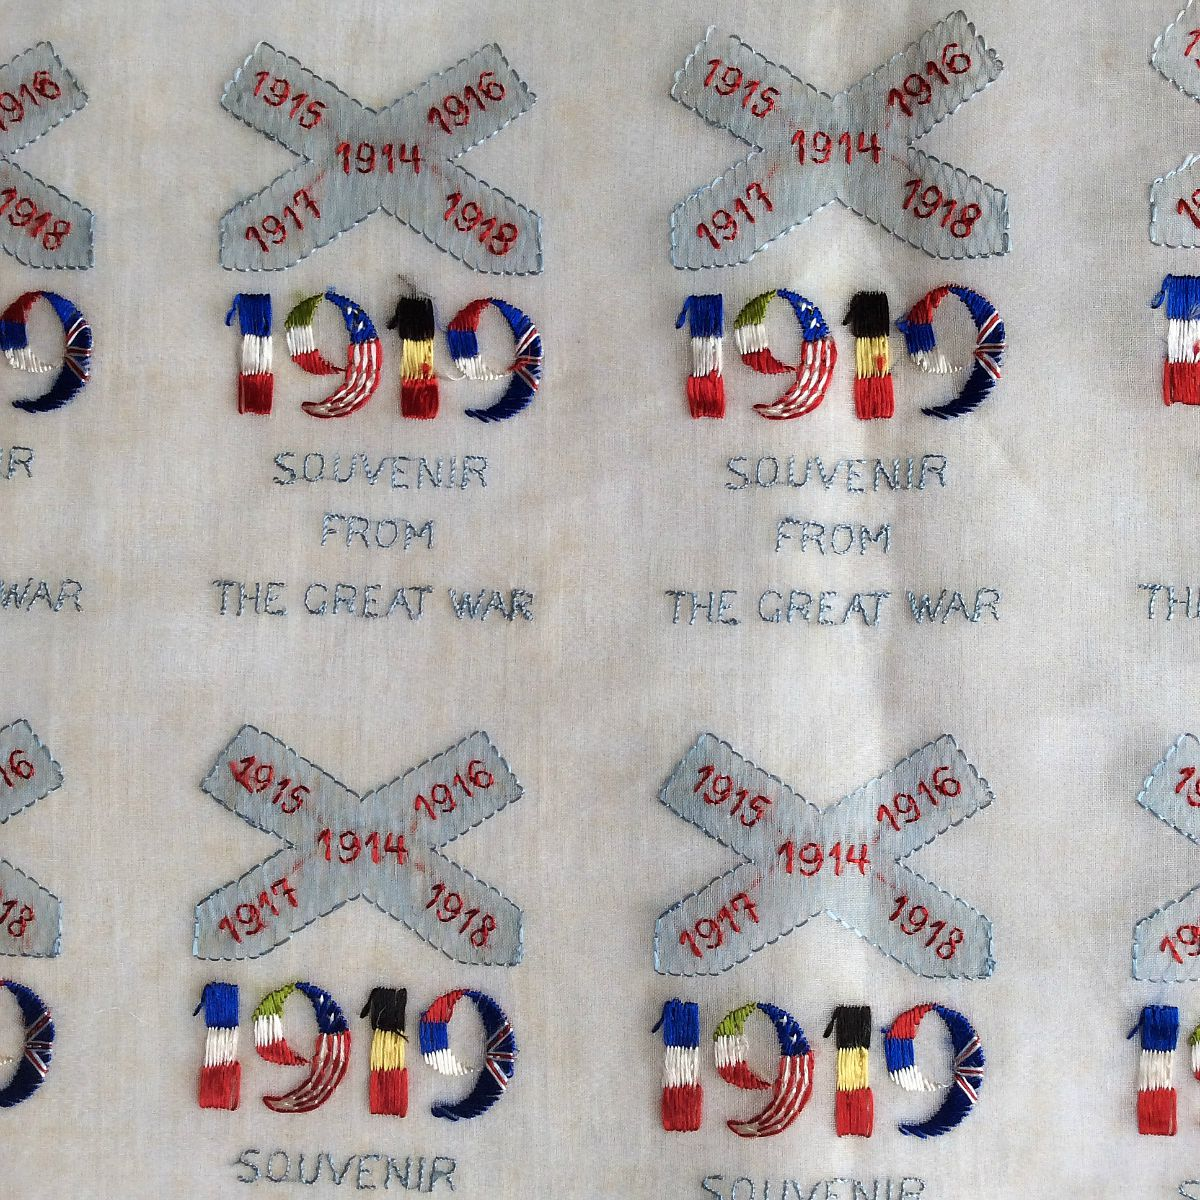 Sheet with multiple, identical images with the text 1919 Souvenir from the Great War, produced by a hand-embroidery machine.